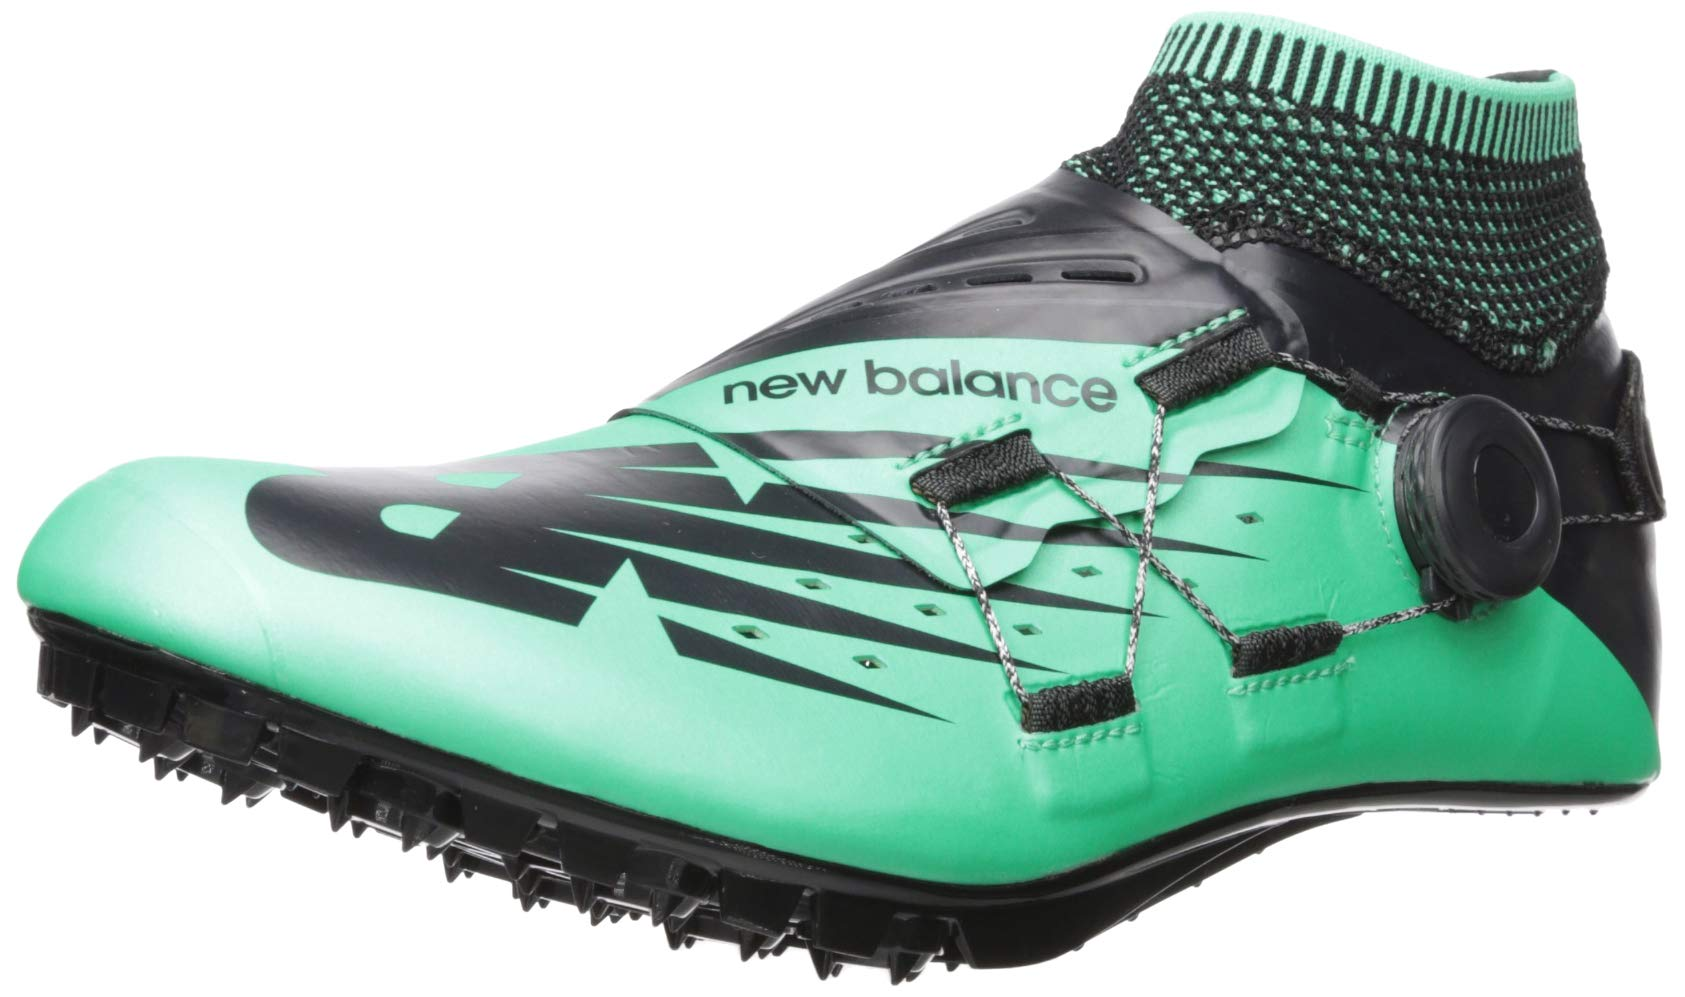 New Balance Men's Sigma V2 Vazee Track Shoe neon Emerald/Black 4 D US by New Balance (Image #1)